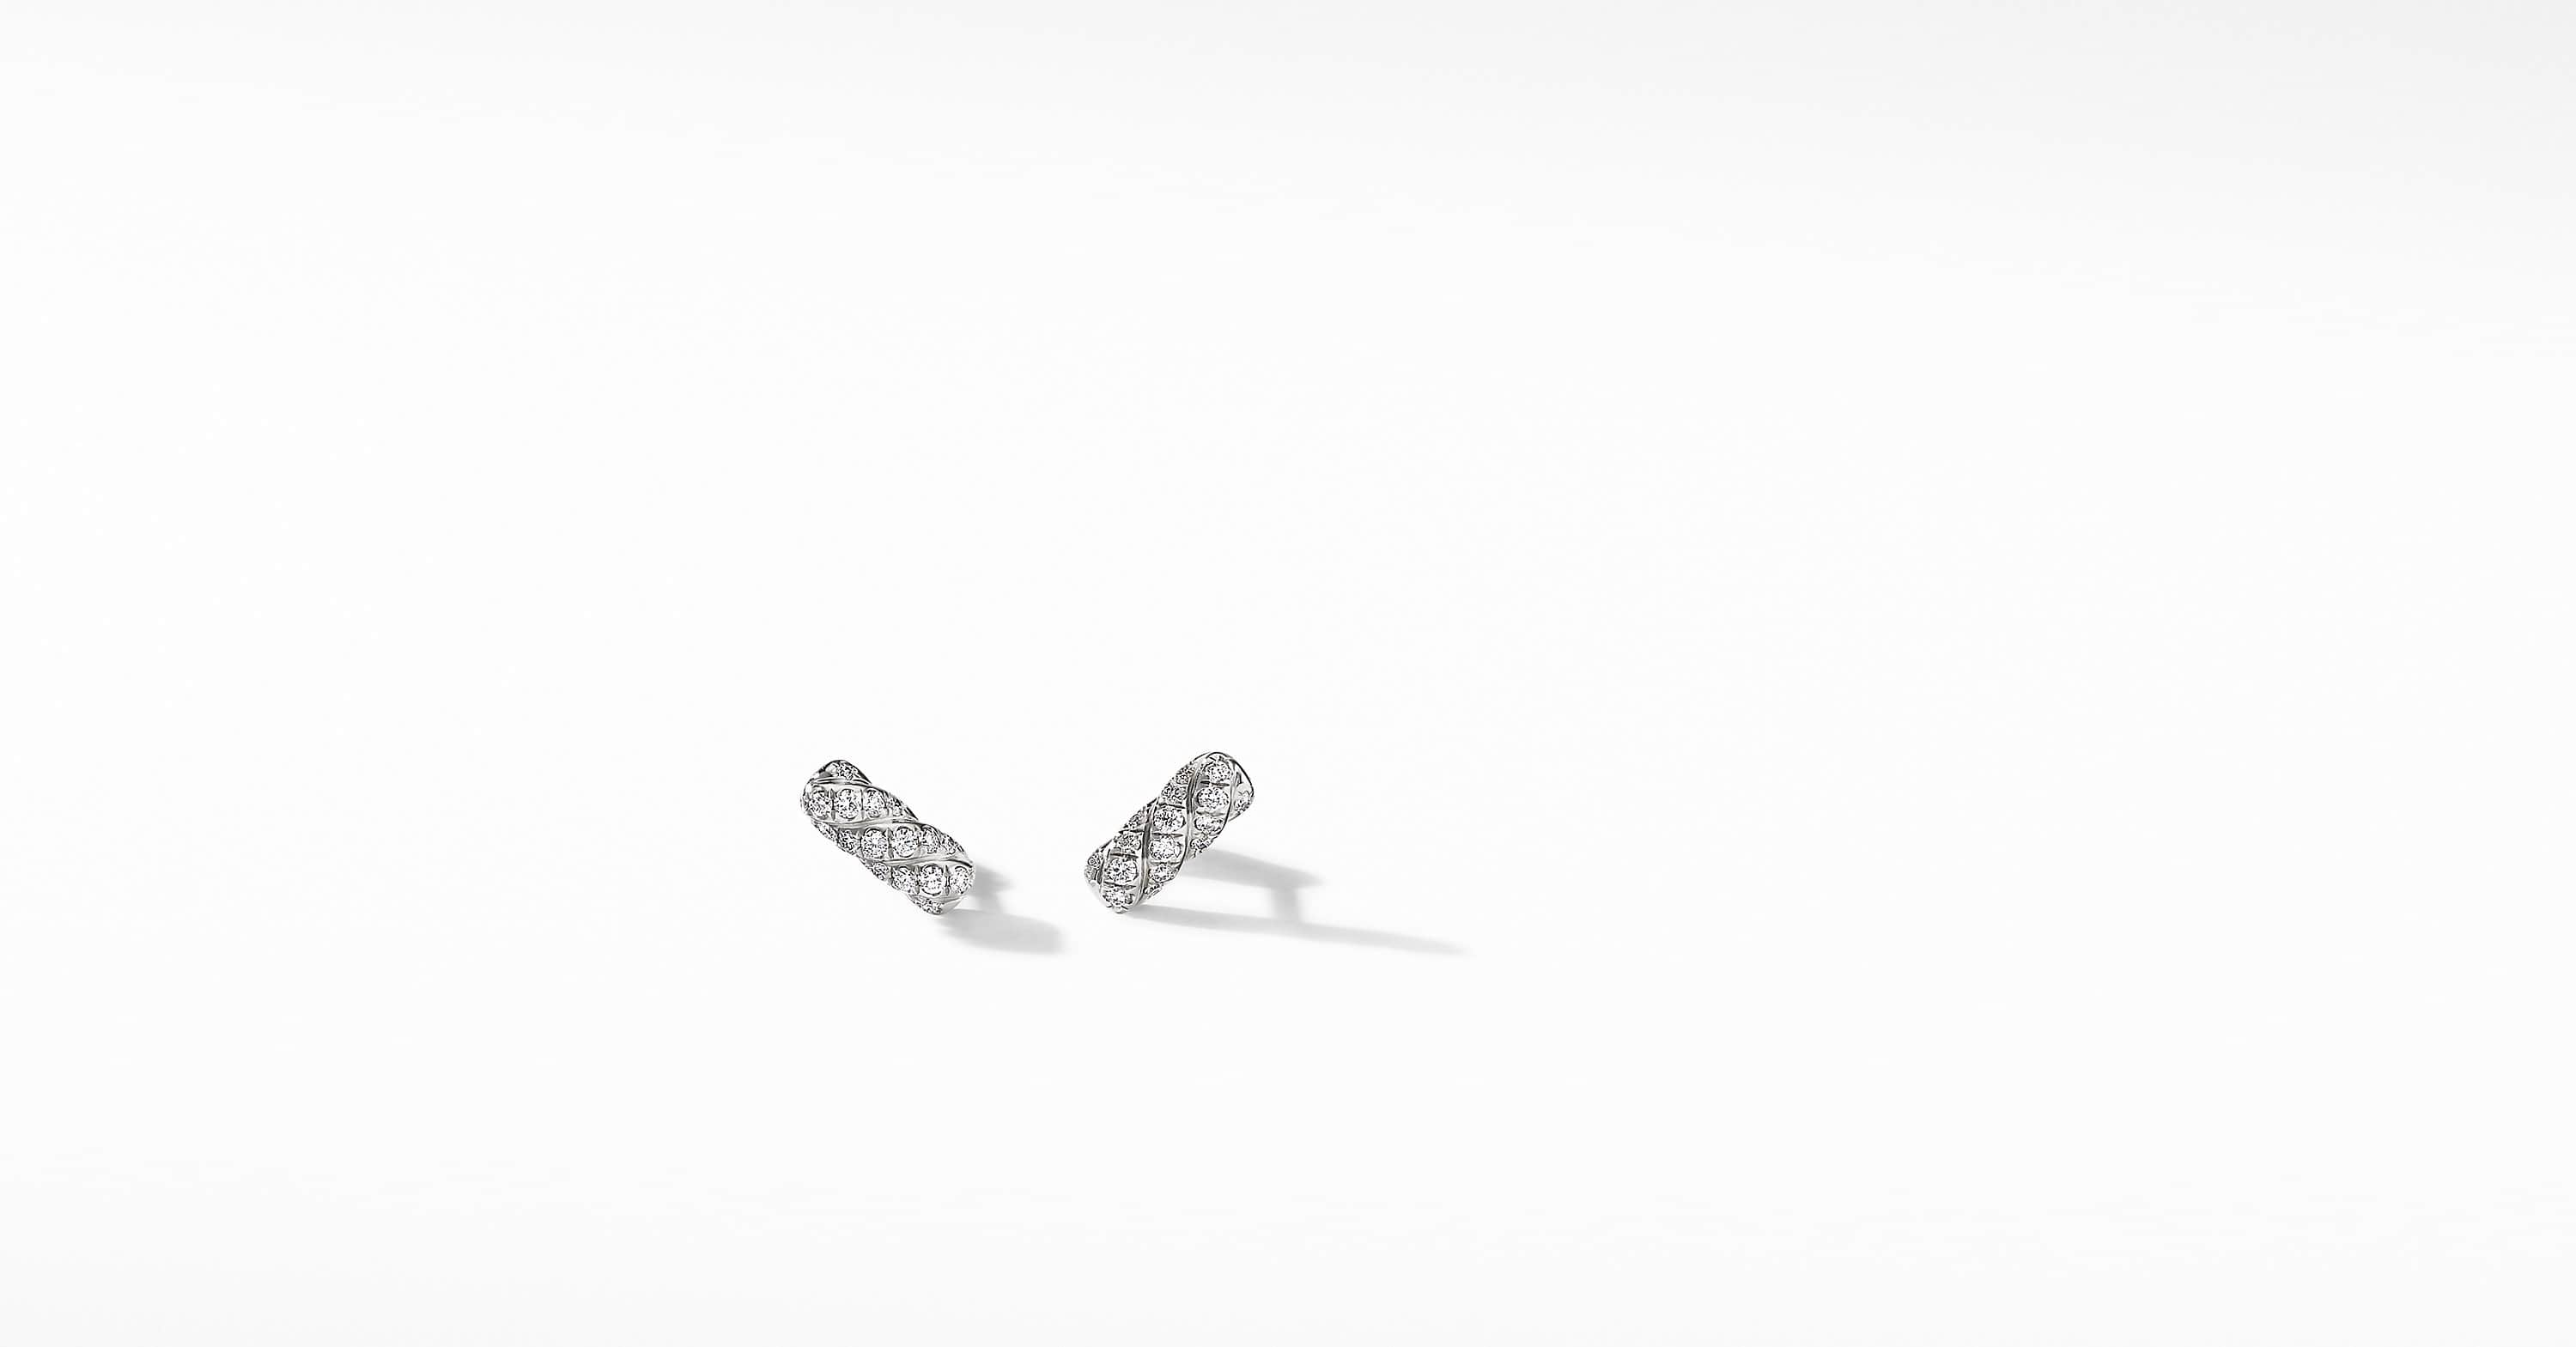 Barrel Stud Earrings in 18K White Gold with Diamonds